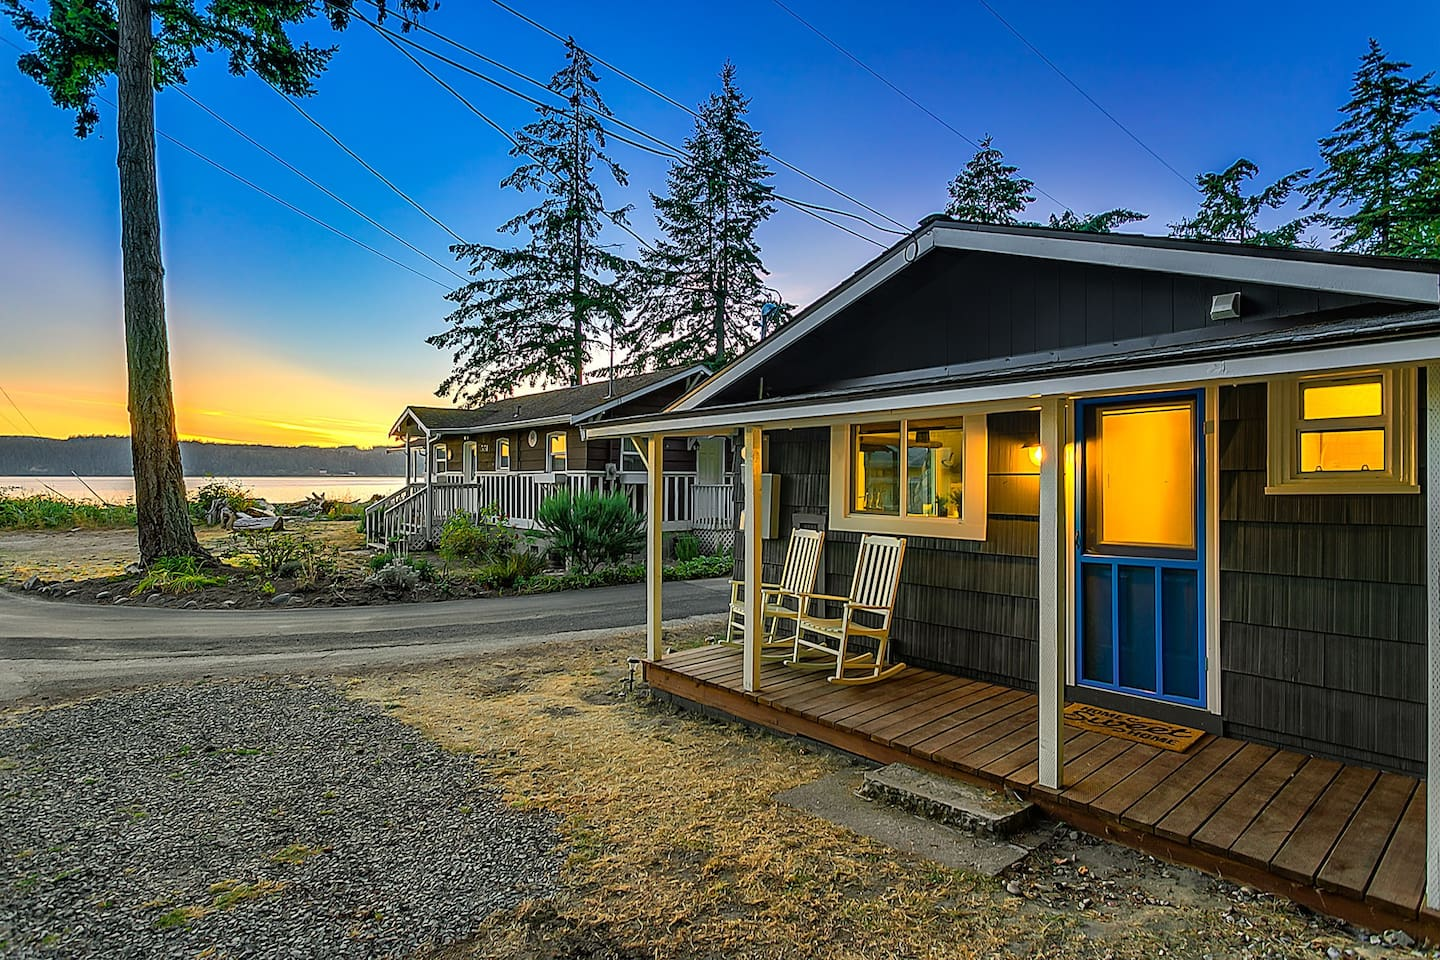 Welcome to Camano Island! This bungalow is professionally managed by TurnKey Vacation Rentals.